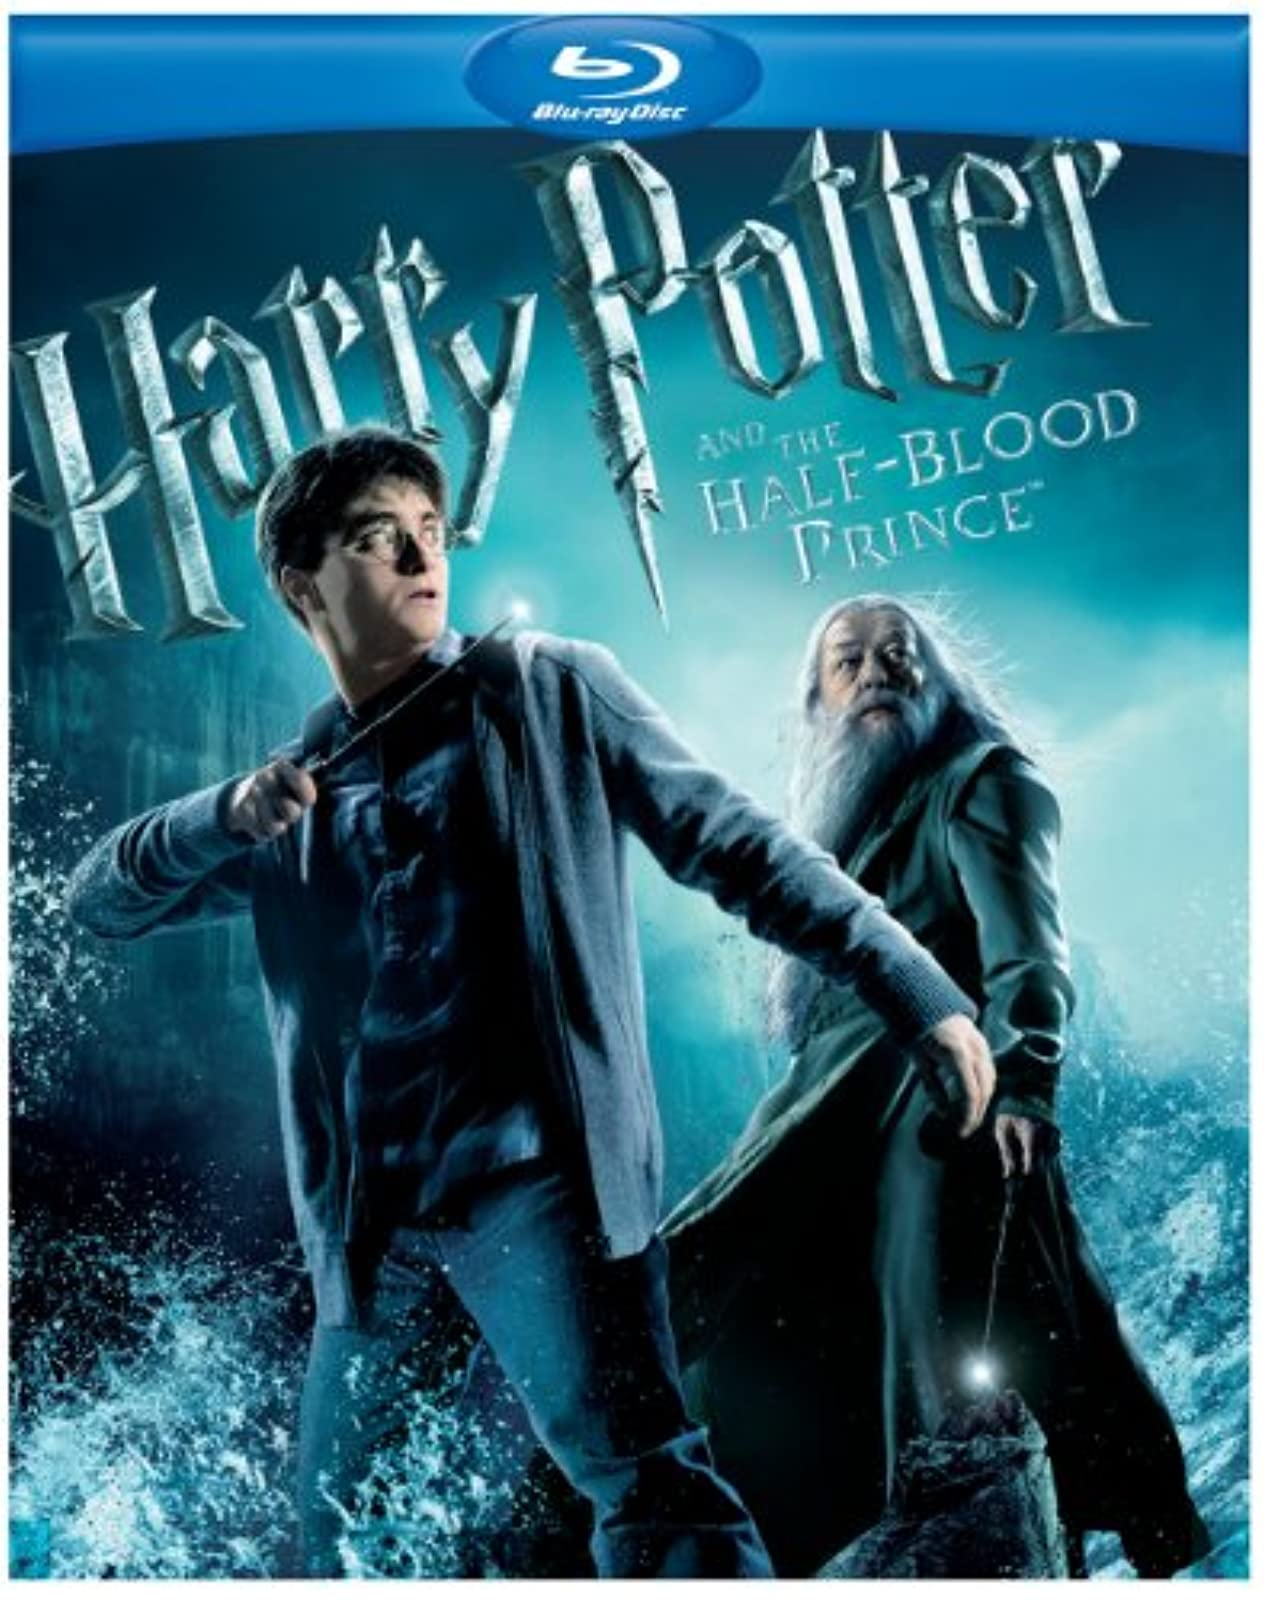 Harry Potter And The Half-Blood Prince Blu-Ray On Blu-Ray With Daniel